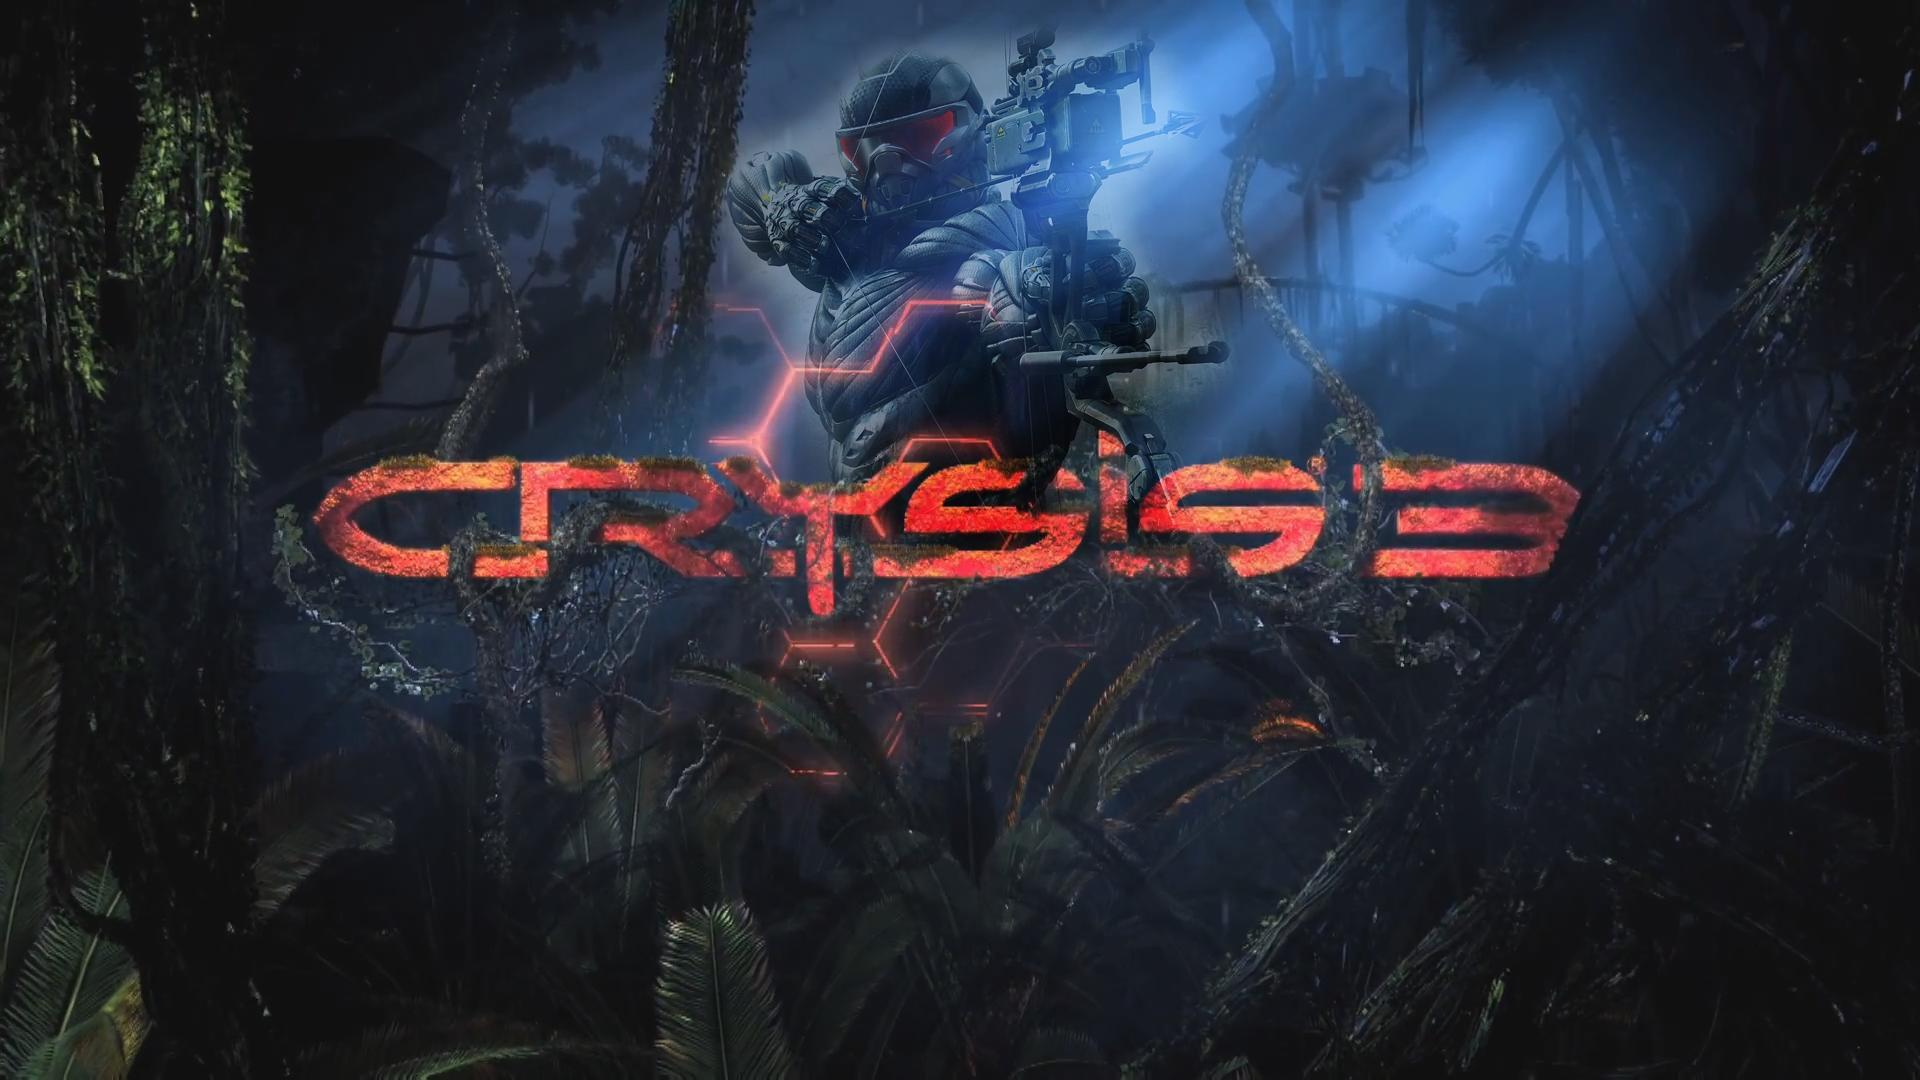 Crysis 3 2013 Video Game 4k Hd Desktop Wallpaper For 4k: Crysis 3 Wallpapers